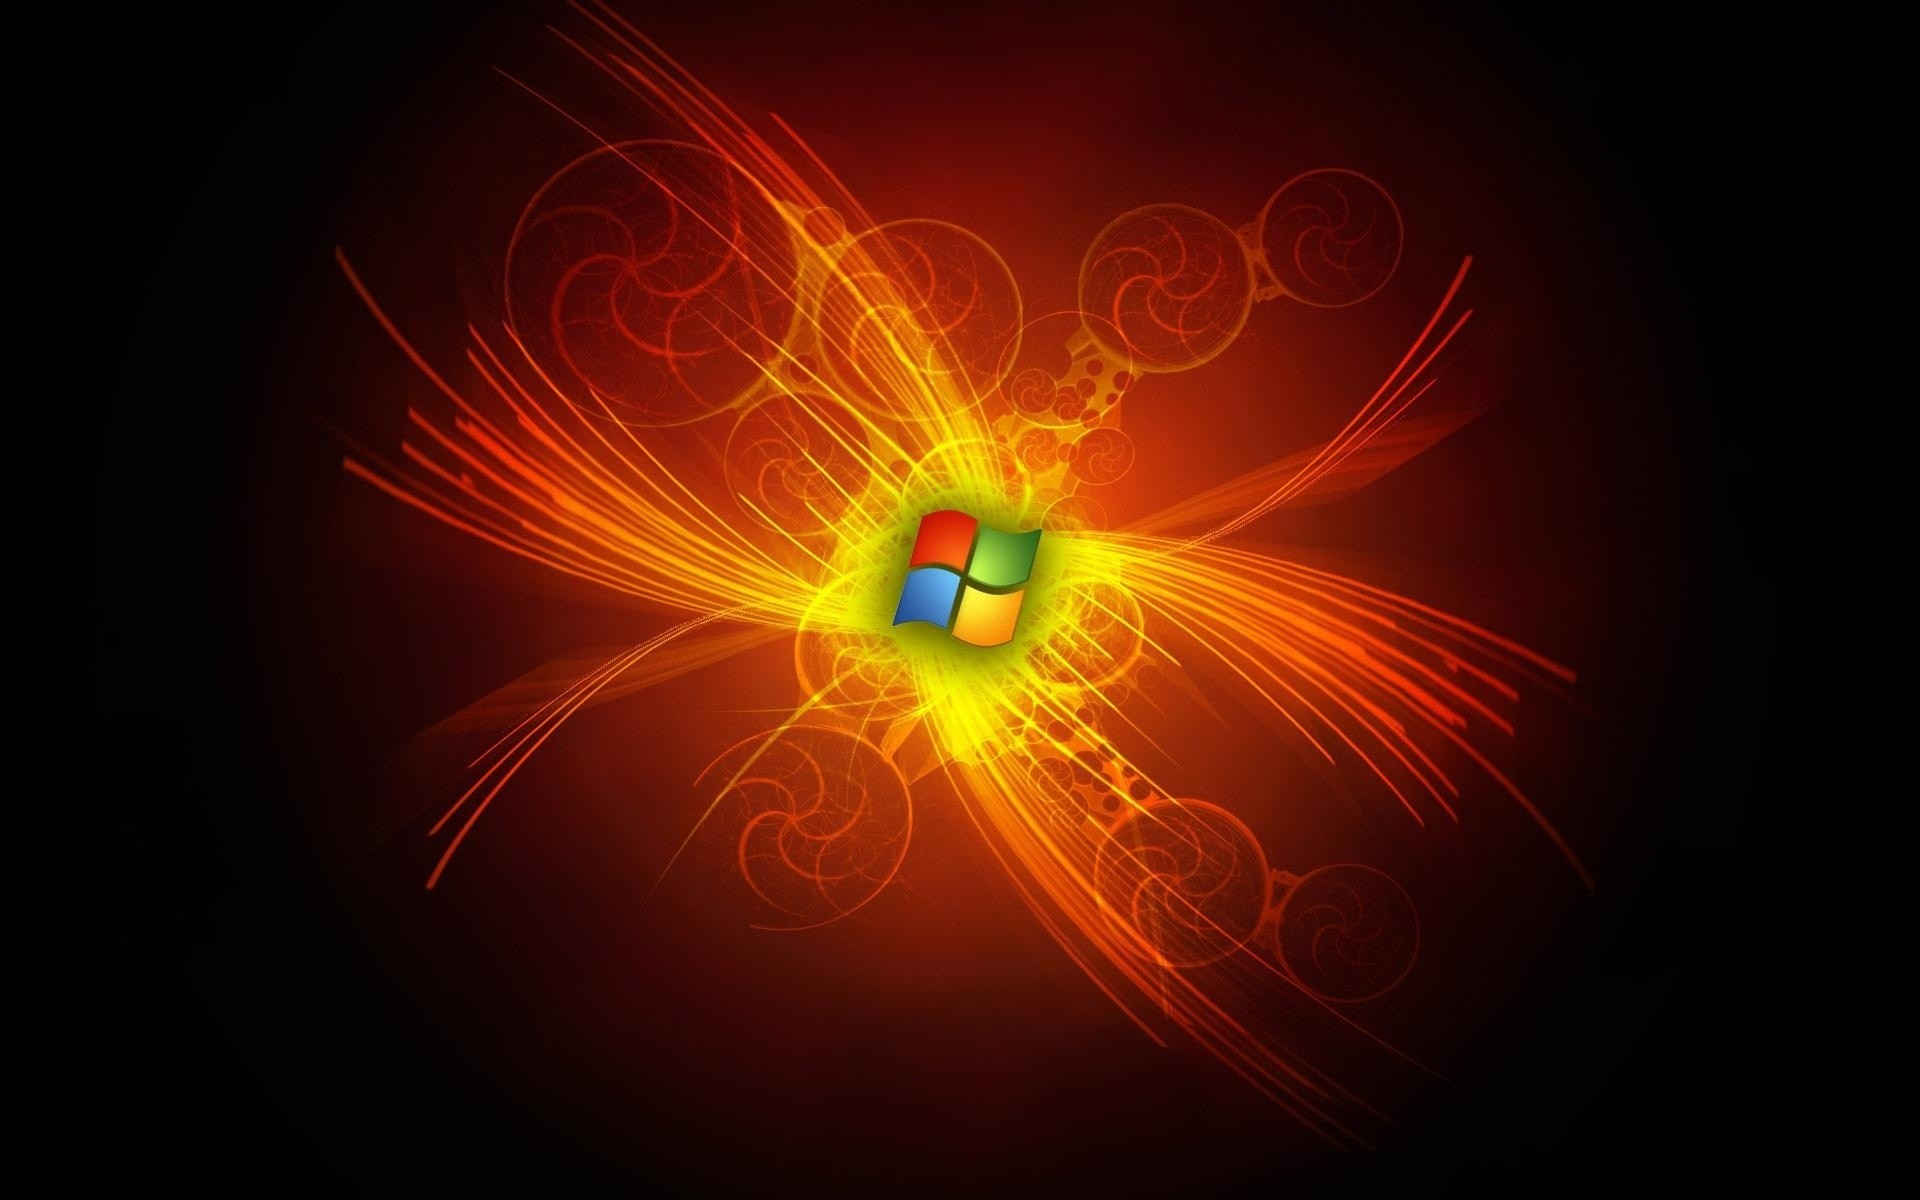 windows abstract flame light design illustration bright wallpaper effect luminescence energy art fractal magic desktop explosion texture fantasy motion element microsoft windows 7